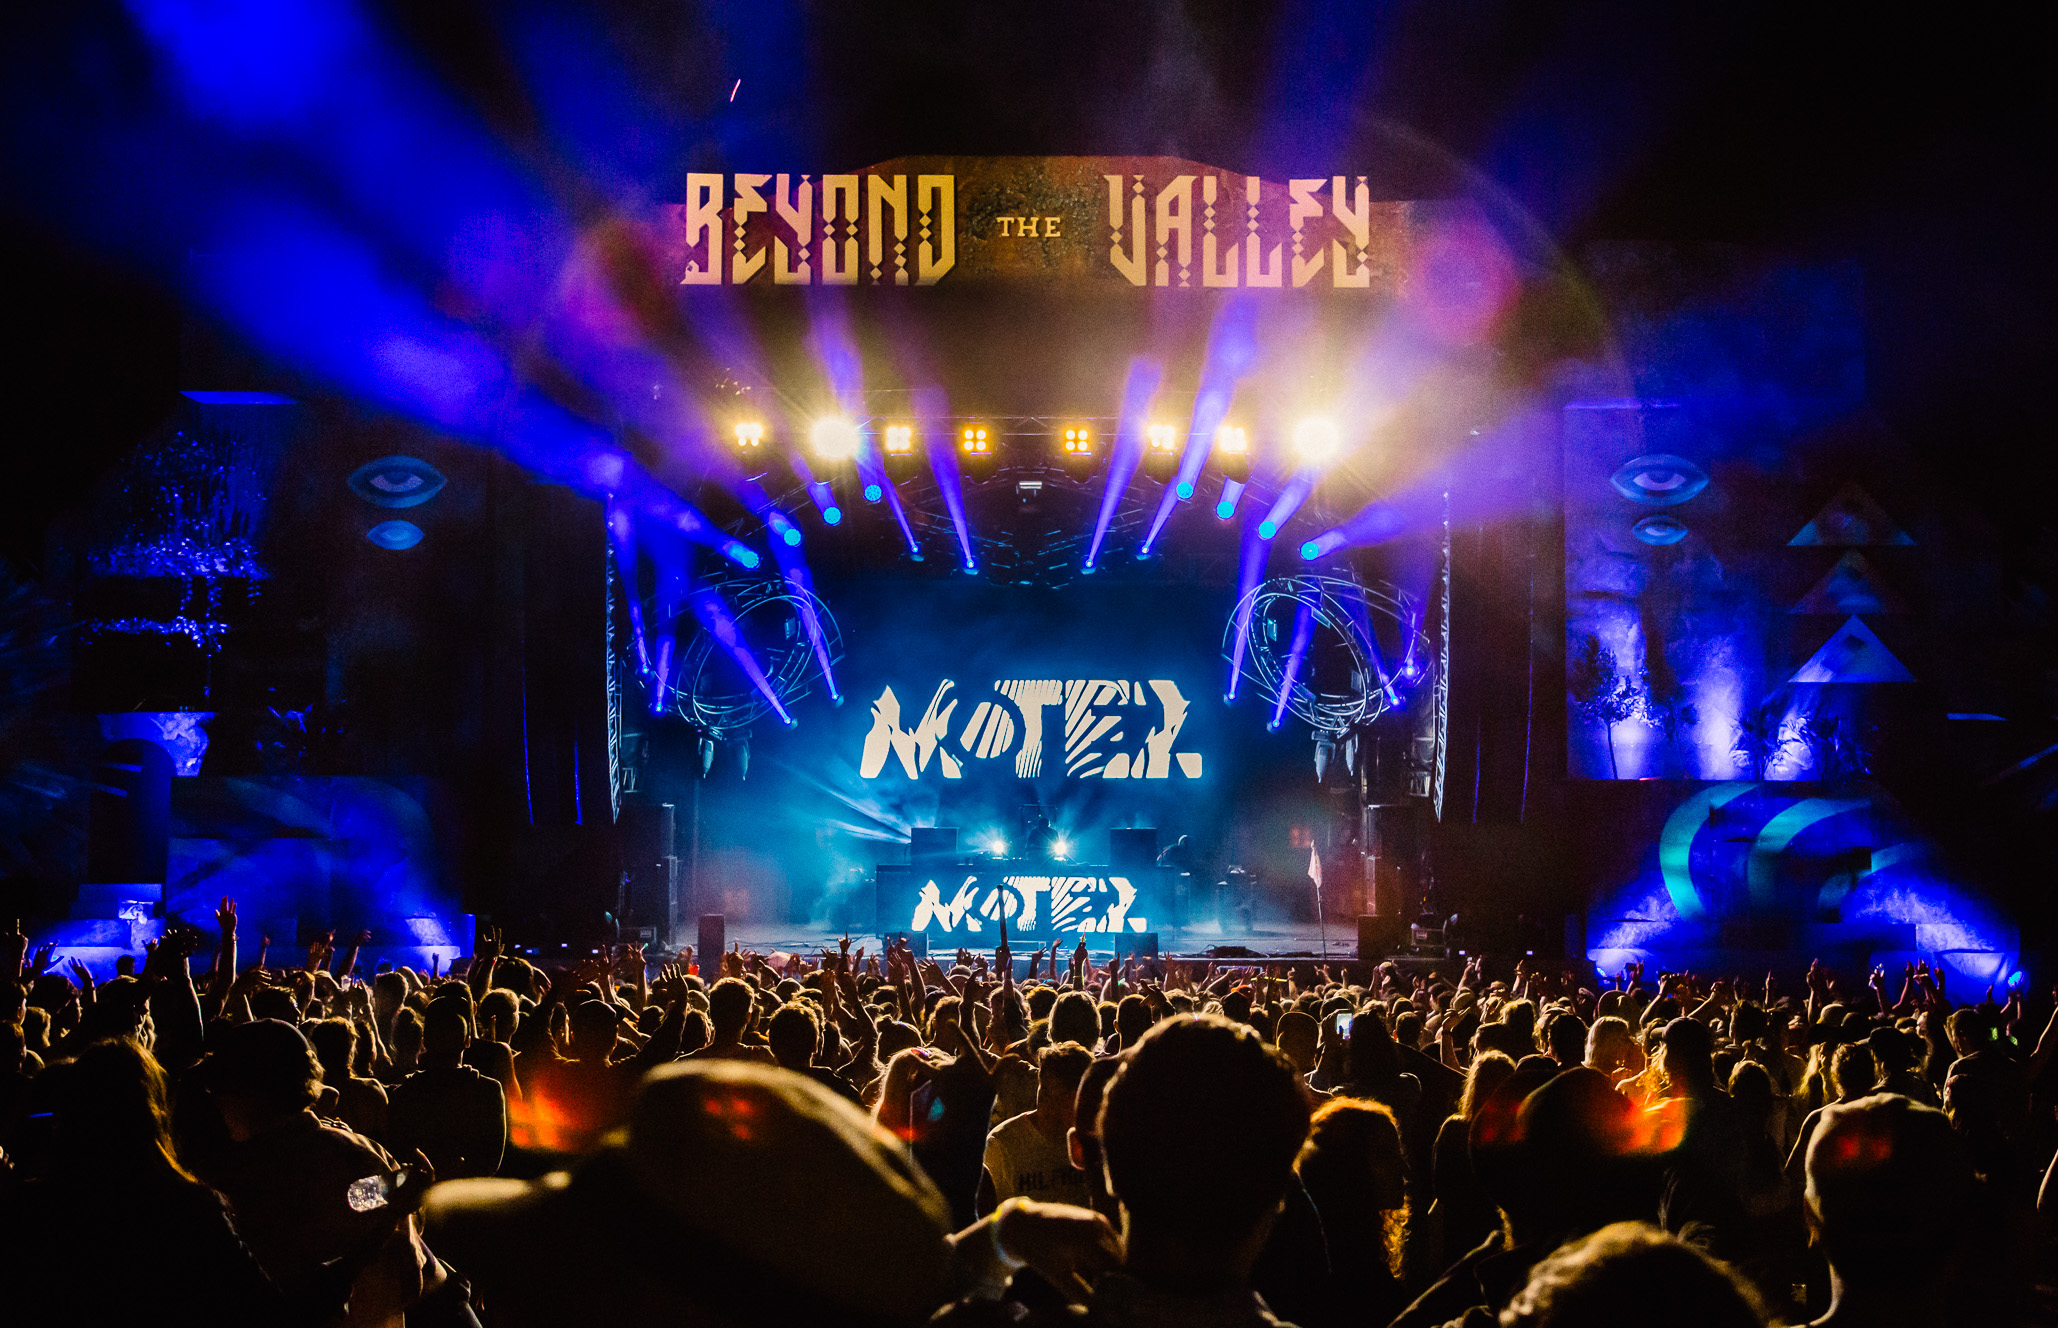 01.01.2017     Motez closing the main stage at Beyond the Valley, a few hours into the new year.